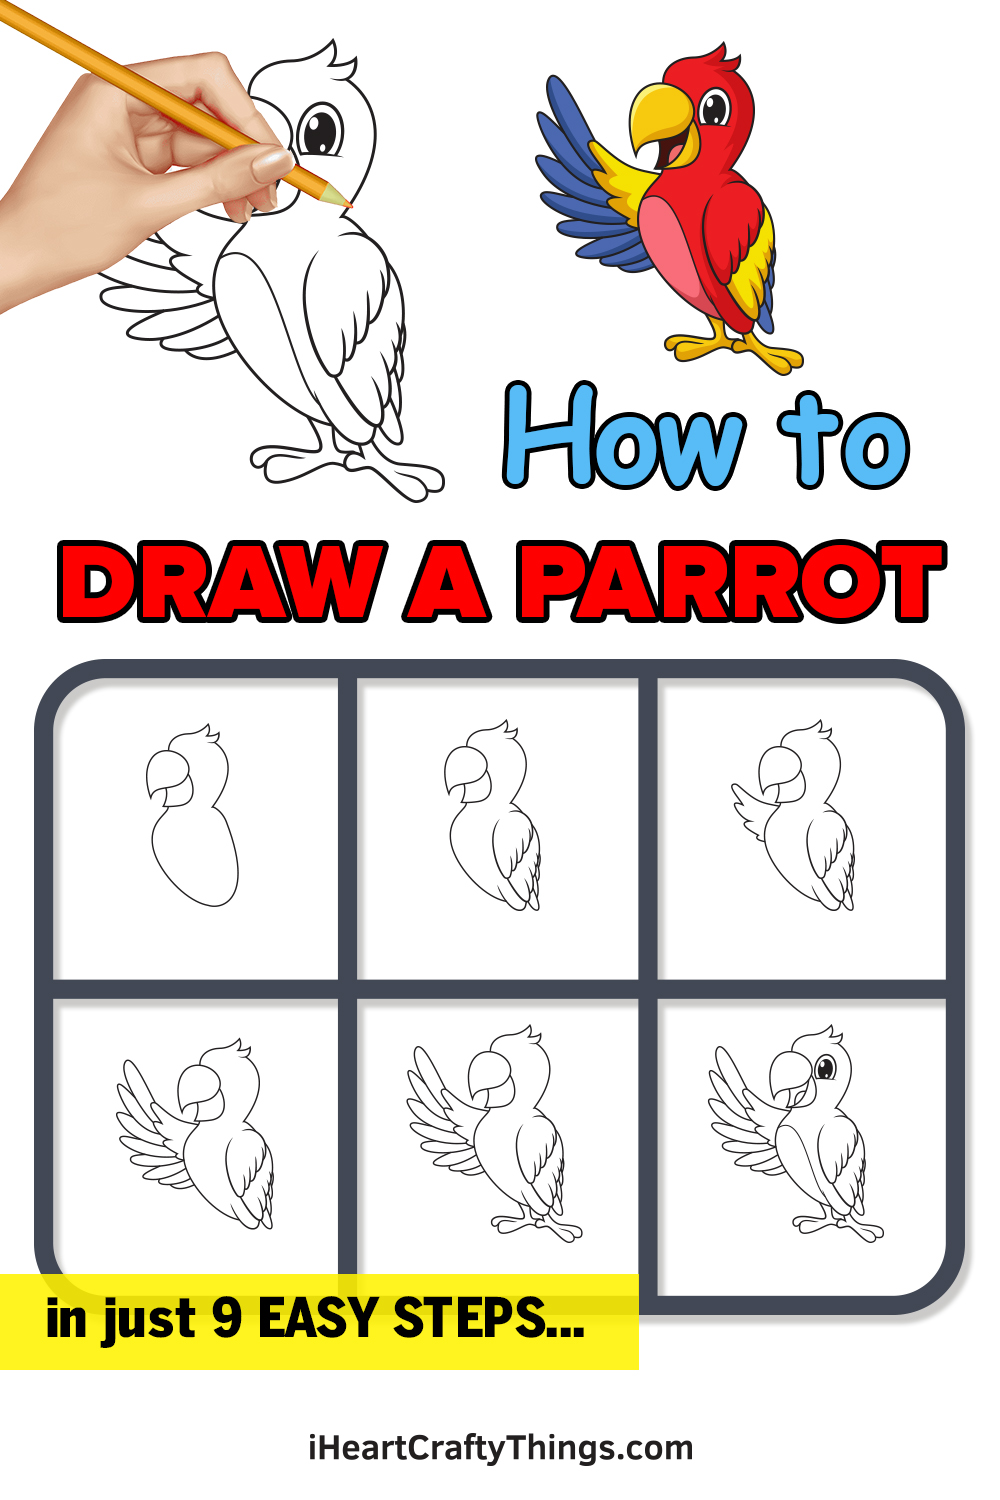 how to draw a parrot in 9 easy steps